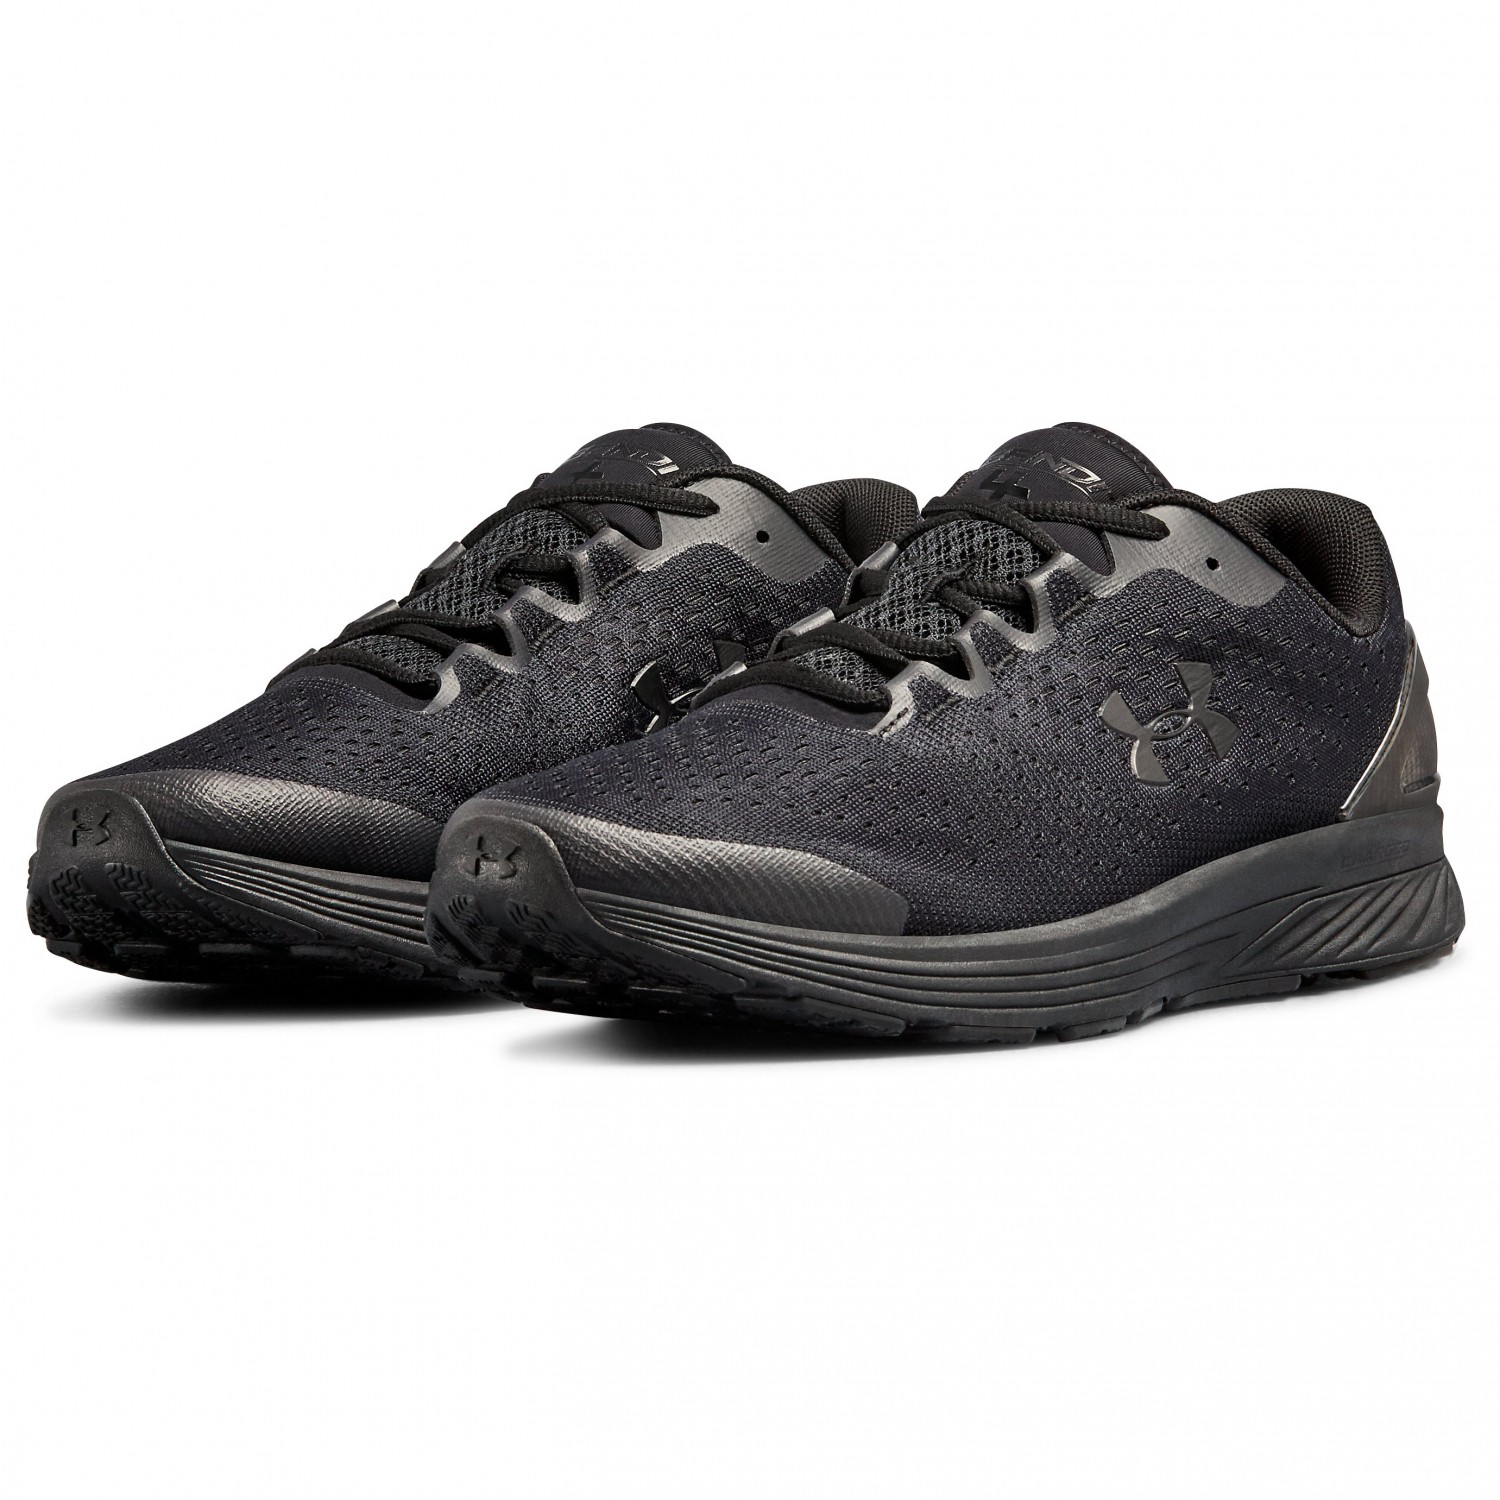 5d81d9fe2c Under Armour - UA Charged Bandit 4 - Running shoes - Black | 9 (US)